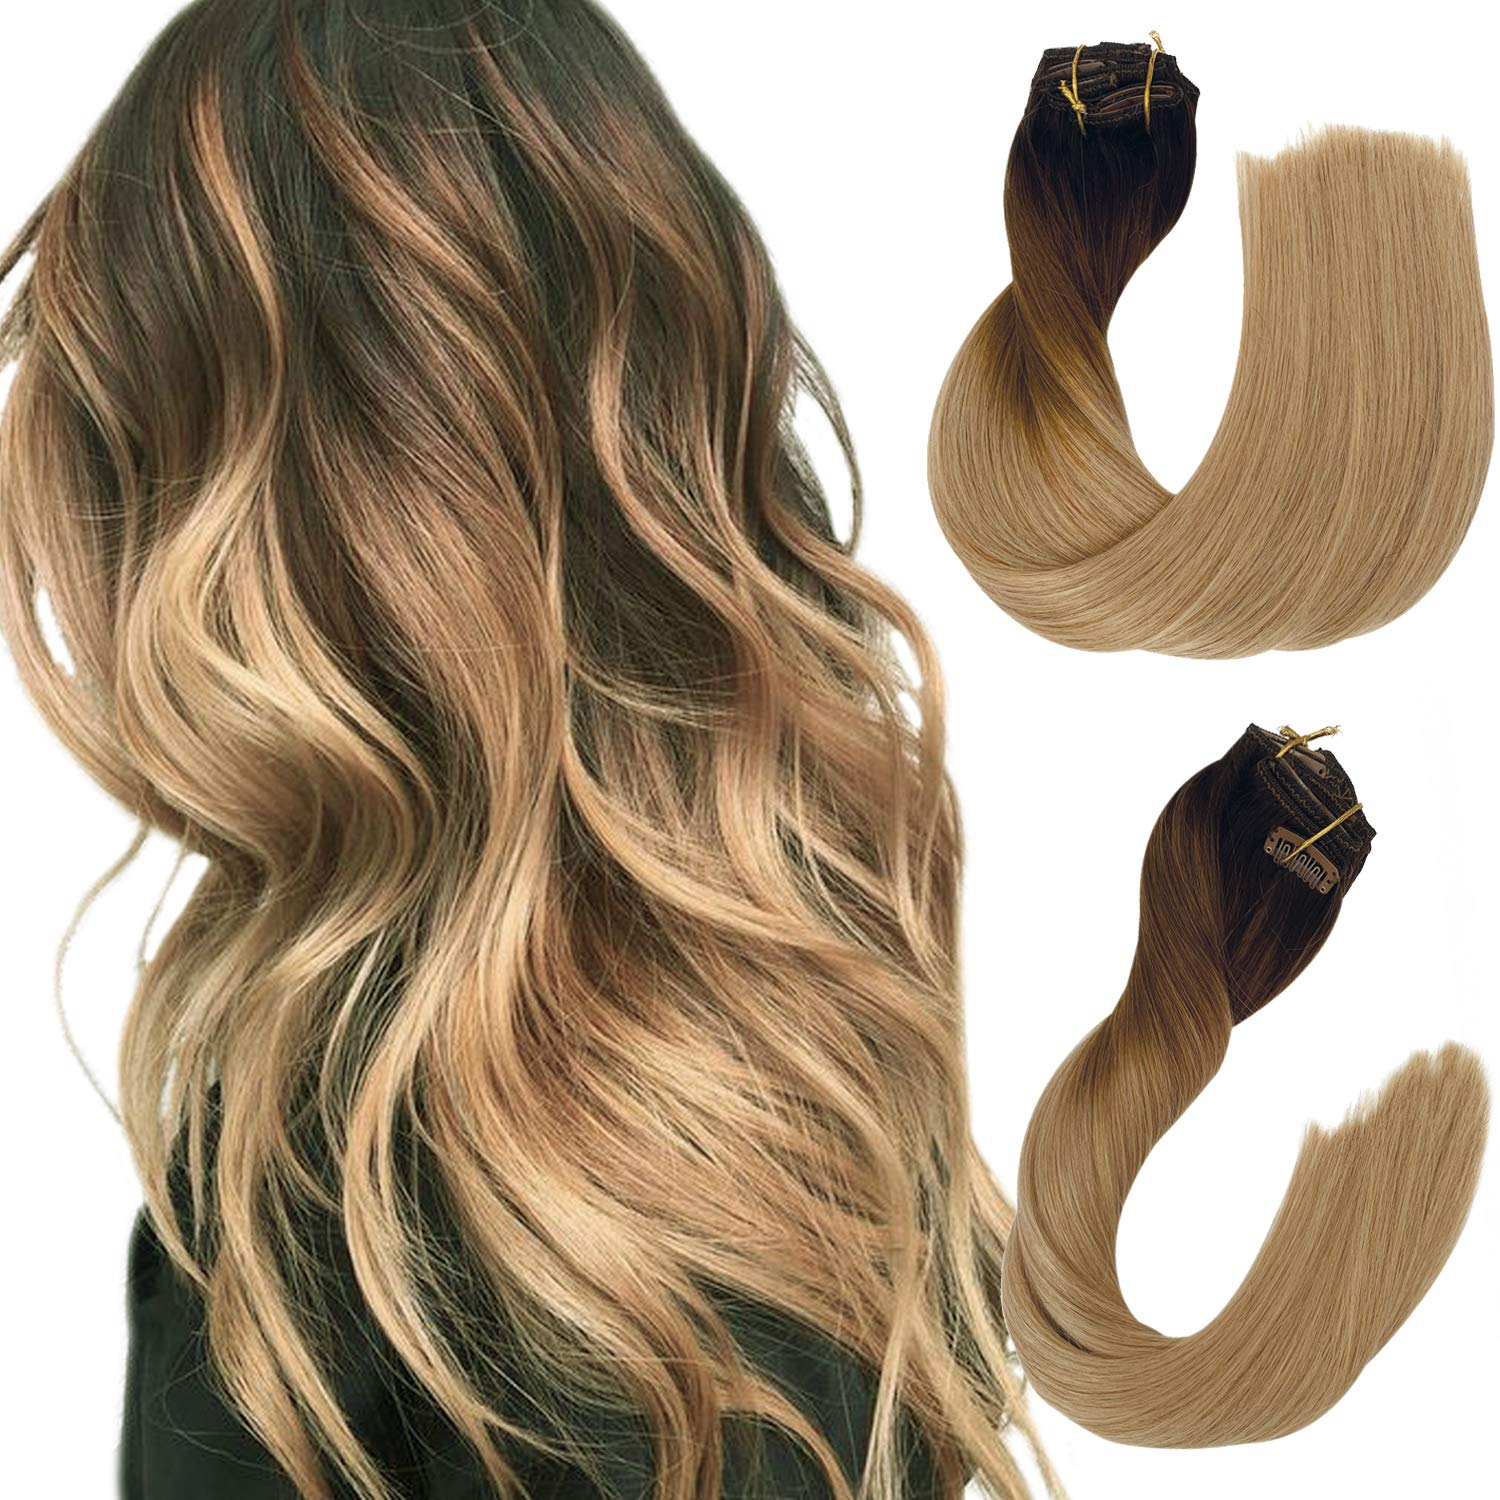 Remy Clip in Human Hair Extensions Dark Brown to Chestnut Brown and Ash Brown Ombre Clip in Real Hair Extensions Double Weft Straight Clip in Extensions for Women 18 Inch 140G 8 Pcs